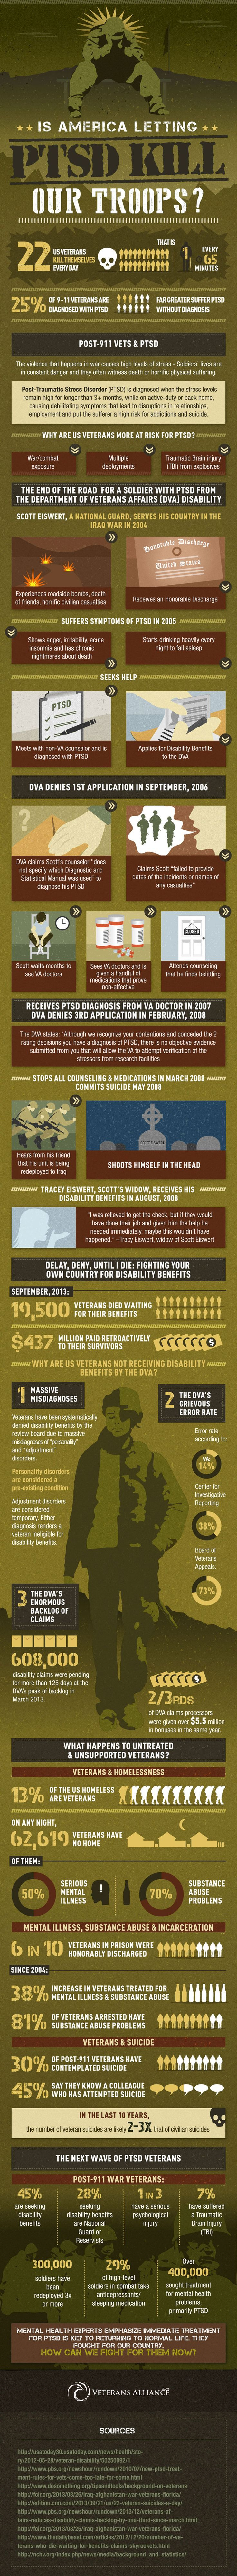 """""""Many Americans have heard that 22 U.S. veteran kill themselves every day, but many have not thought through what that means on a big scale. Here is the best PTSD breakdown I've seen using an infographic."""""""